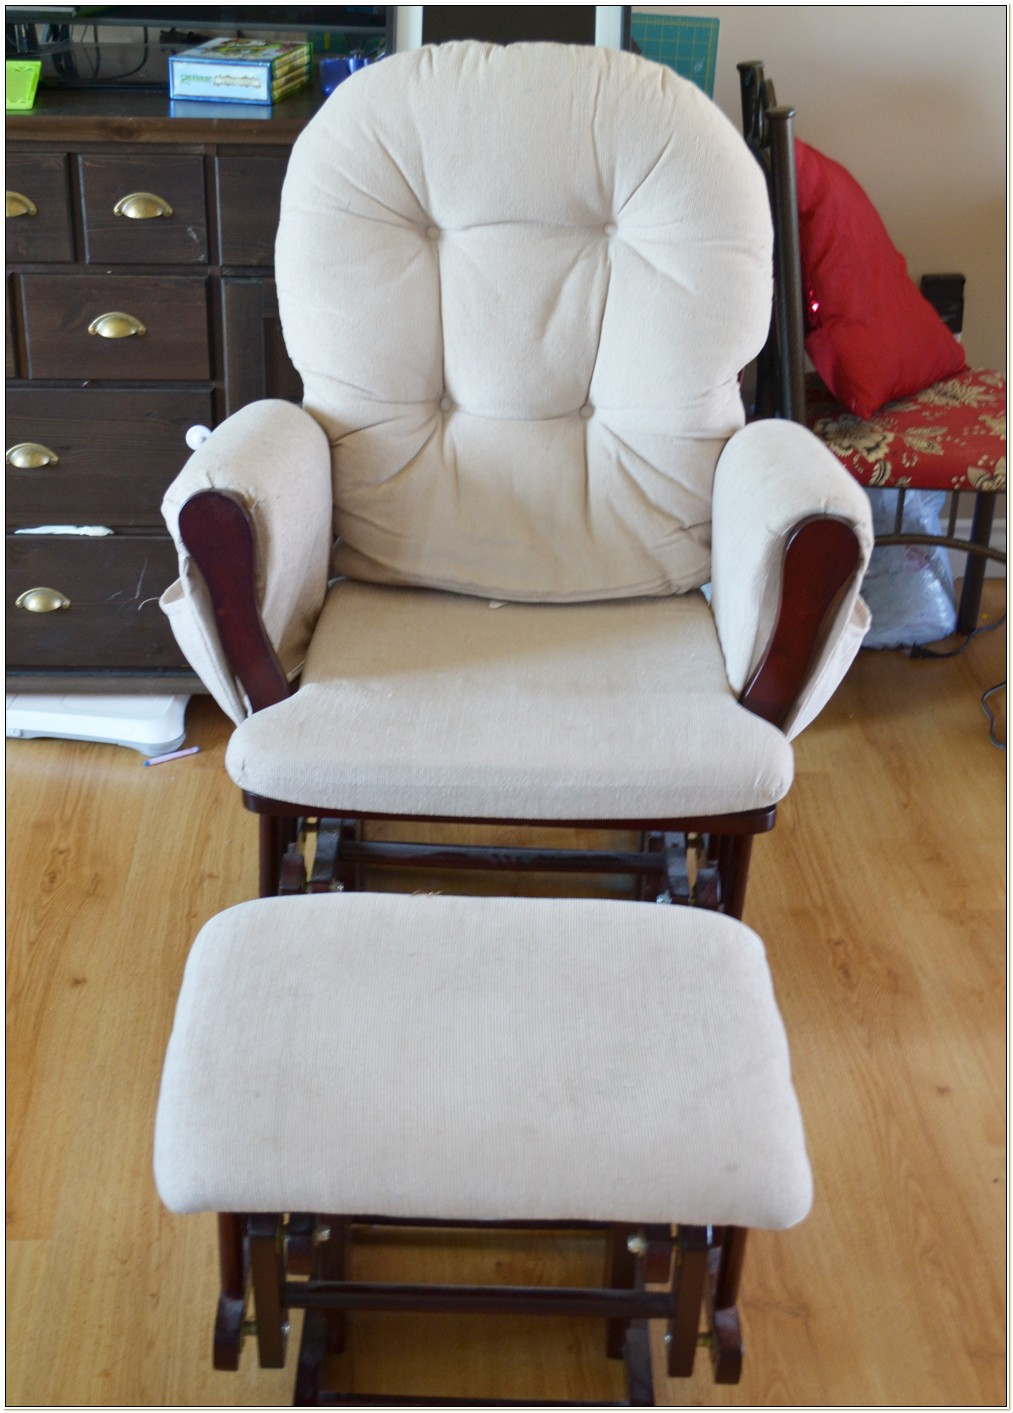 Chair Cushions For Glider Rocking Chairs